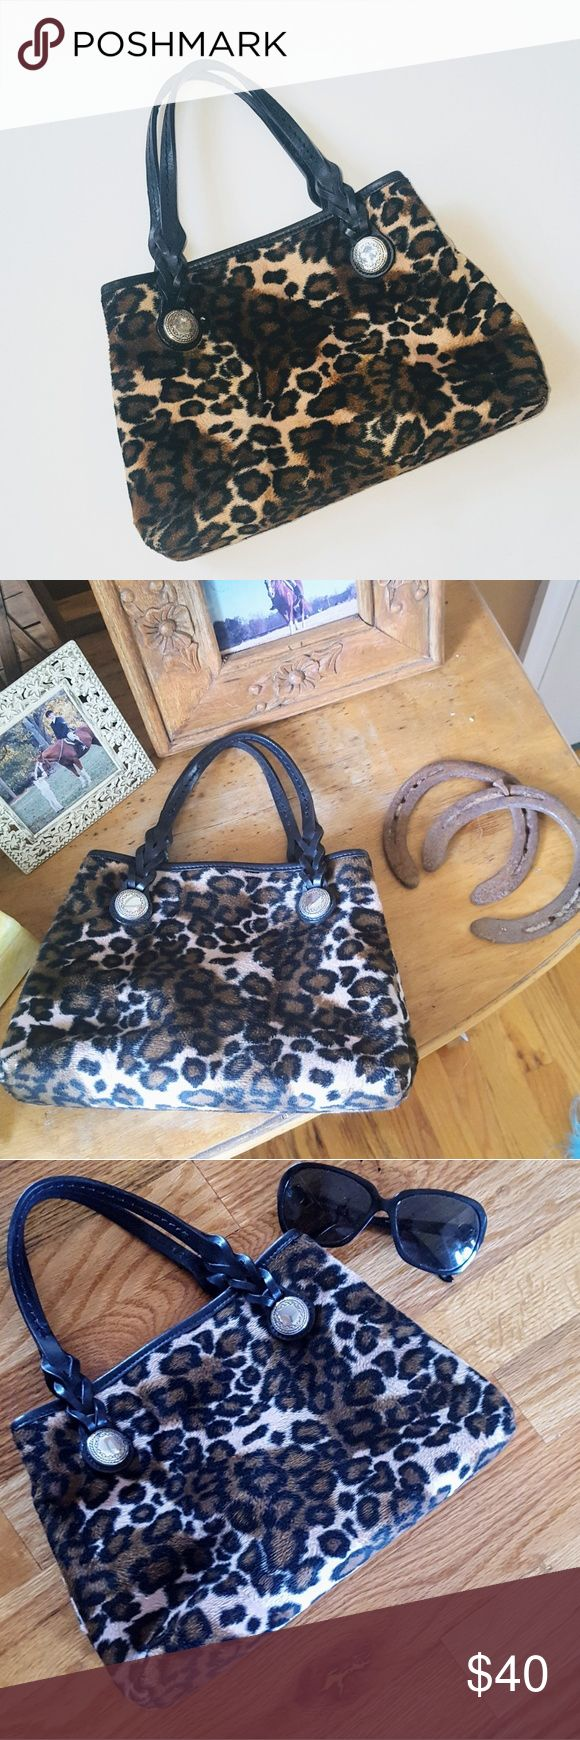 """Brighton Tote Leopard Print Bag Super cute! Note that the hanging heart fob is missing. Otherwise very good condition. Fuzzy texture. Style# 080368. Lovely details. I put a pic next to sunglasses so you can get an idea of the size, and I took pics in various lighting so you can get an idea of the colors.  Approx 10.5"""" width, 7"""" height, 5"""" strap drop, 4"""" depth Brighton Bags Totes"""